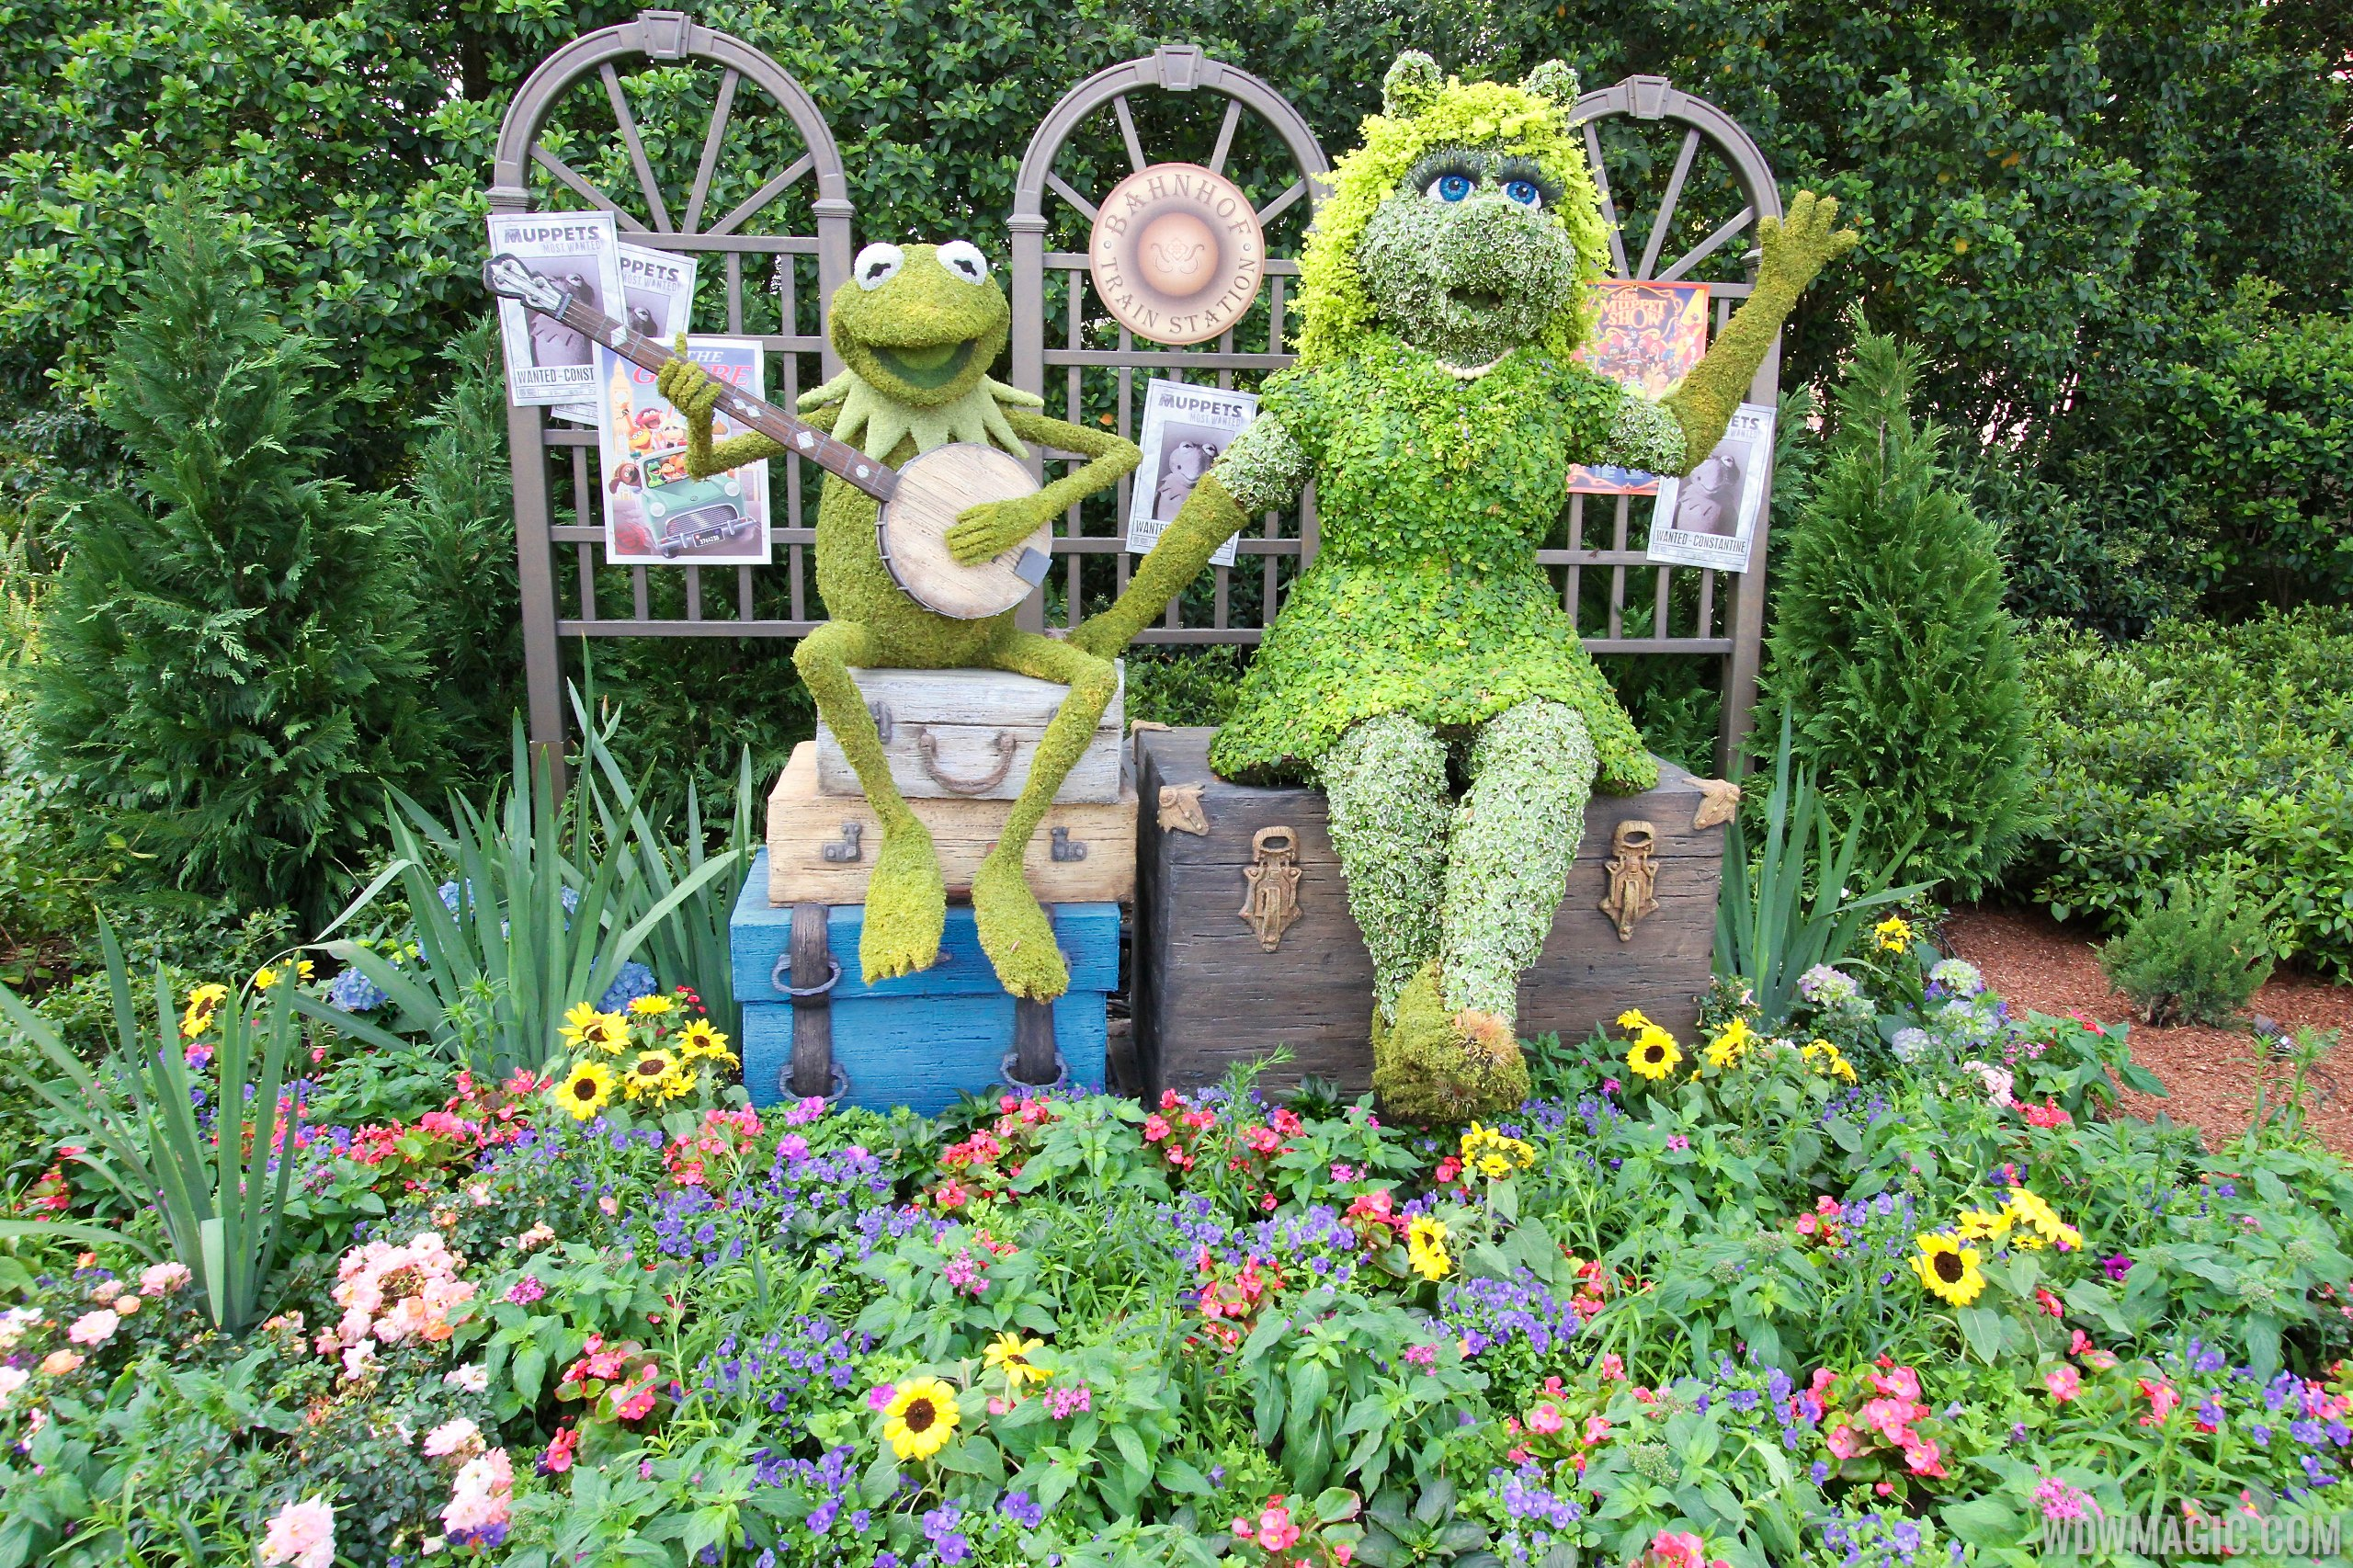 2014 Epcot Flower and Garden Festival - Kermit and Miss Piggy Muppets topiary